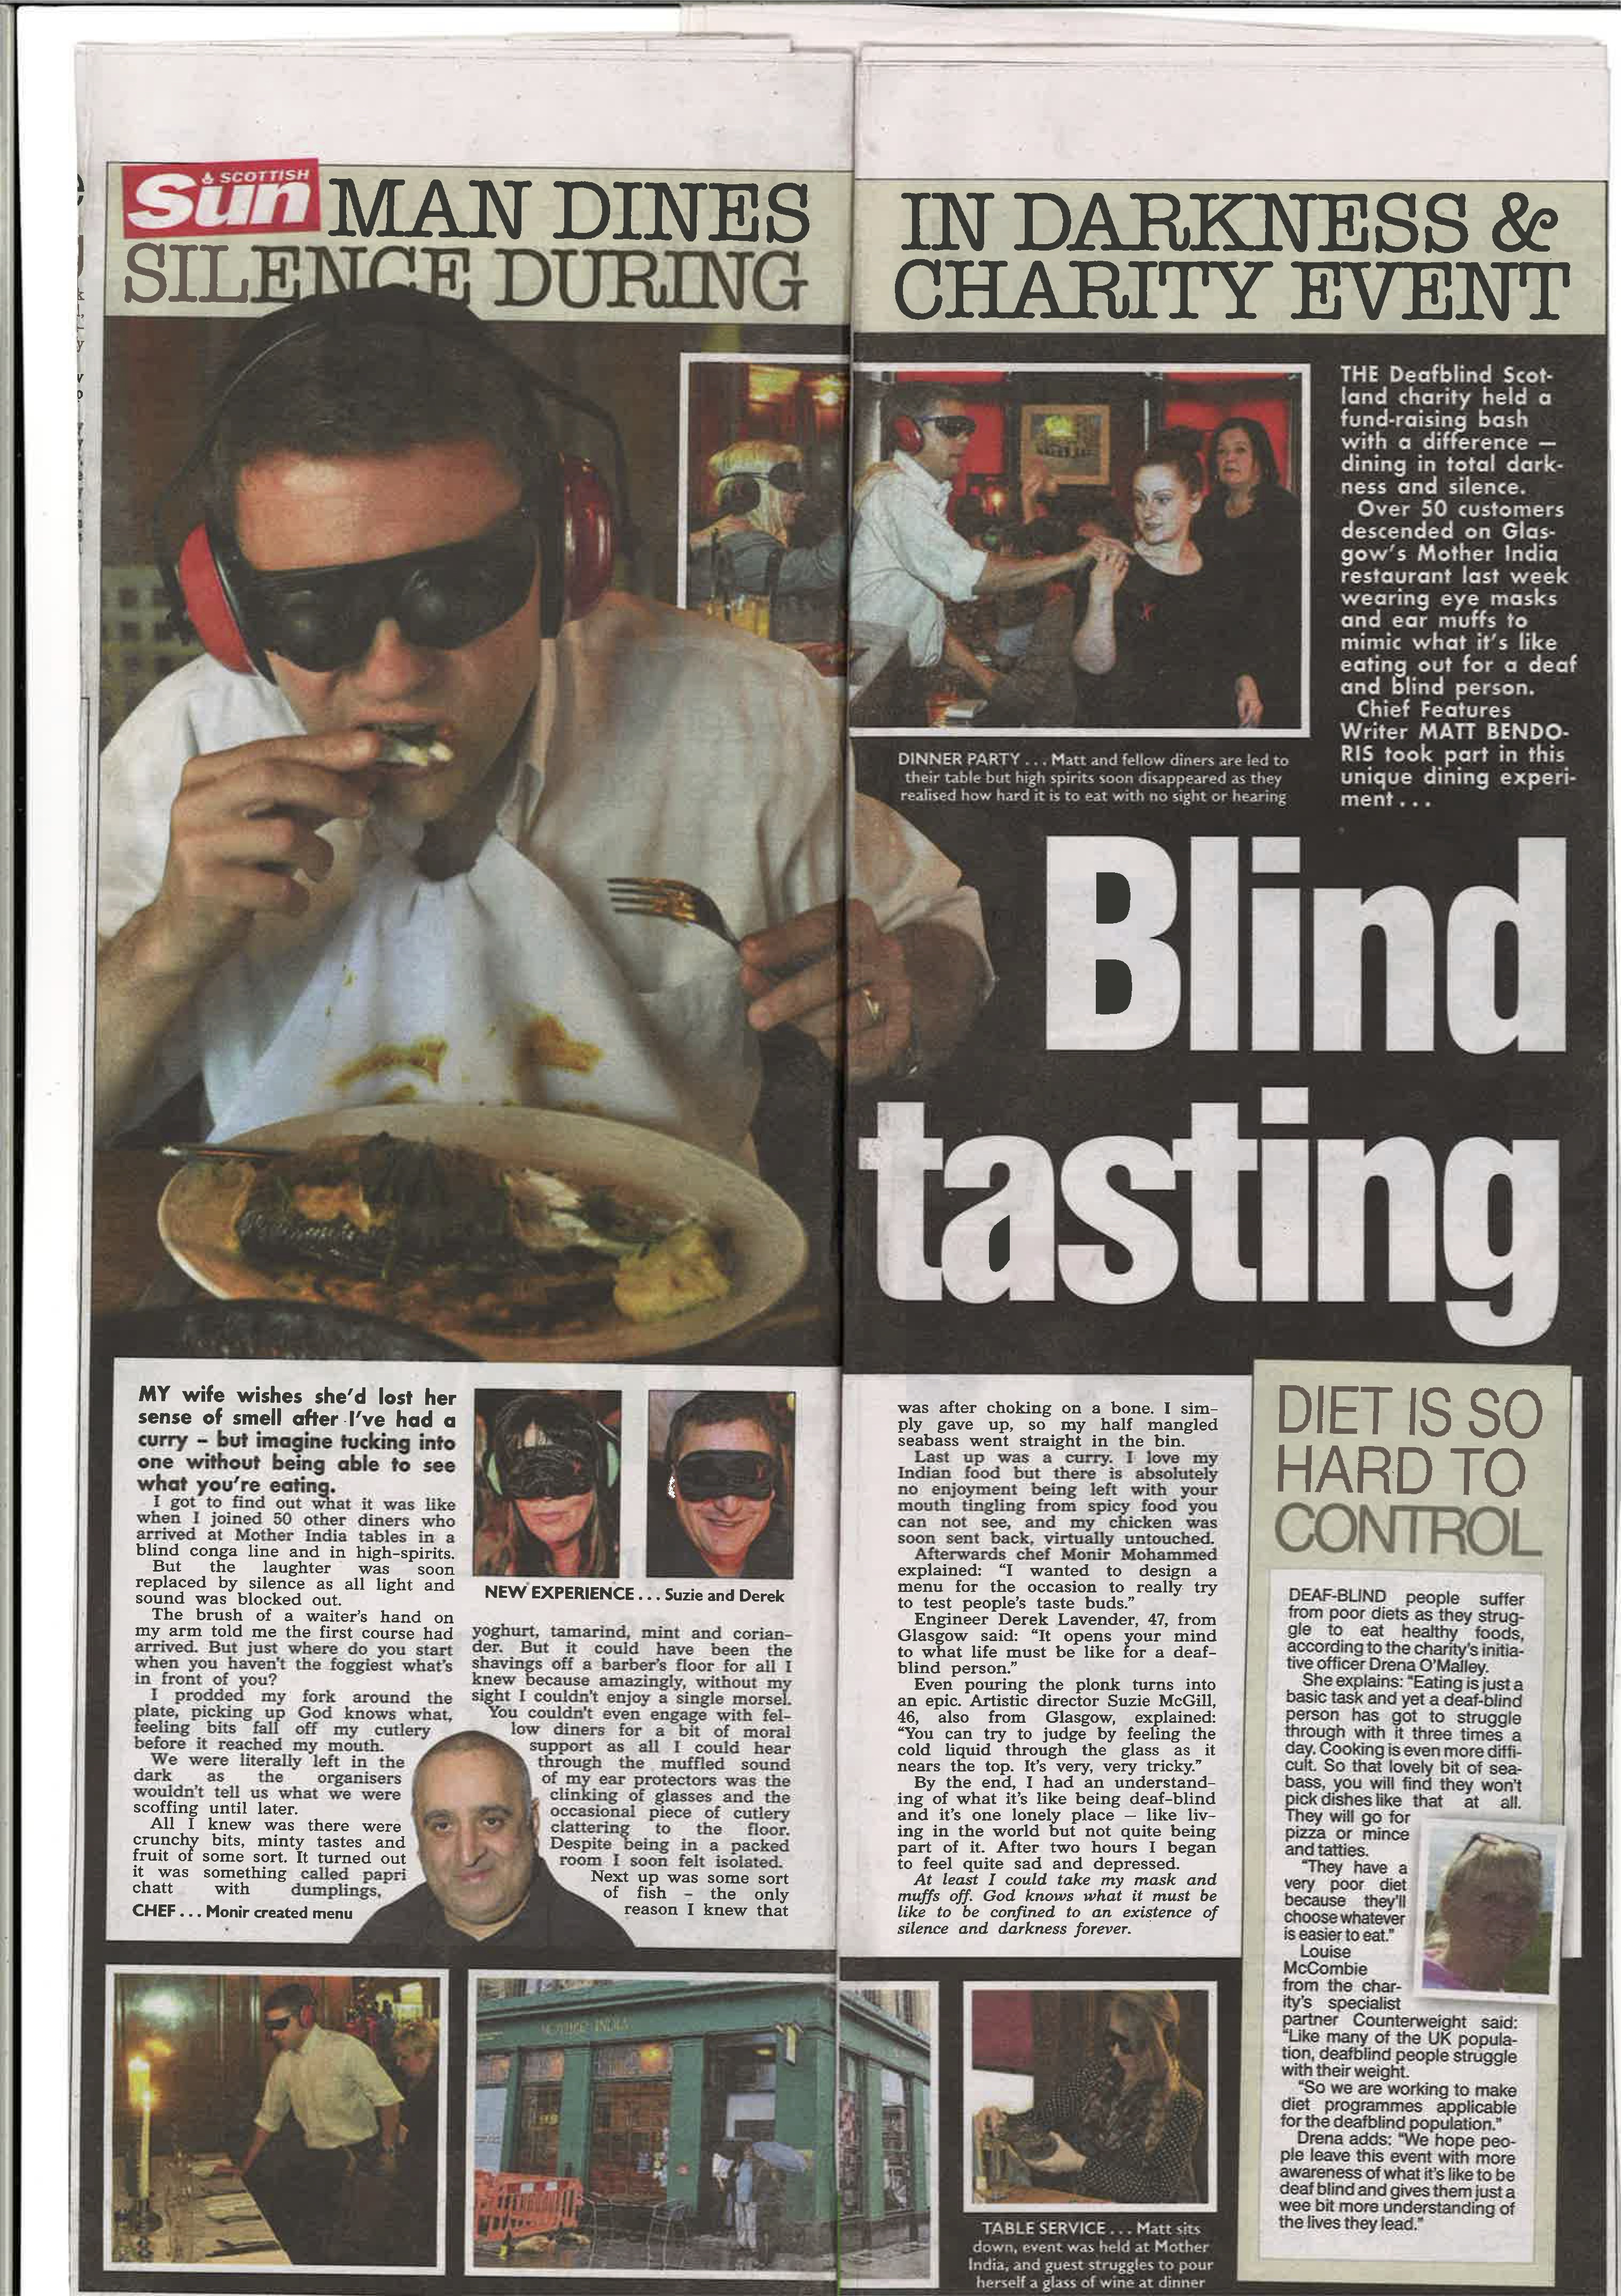 Dining in darkness in deafening silence article